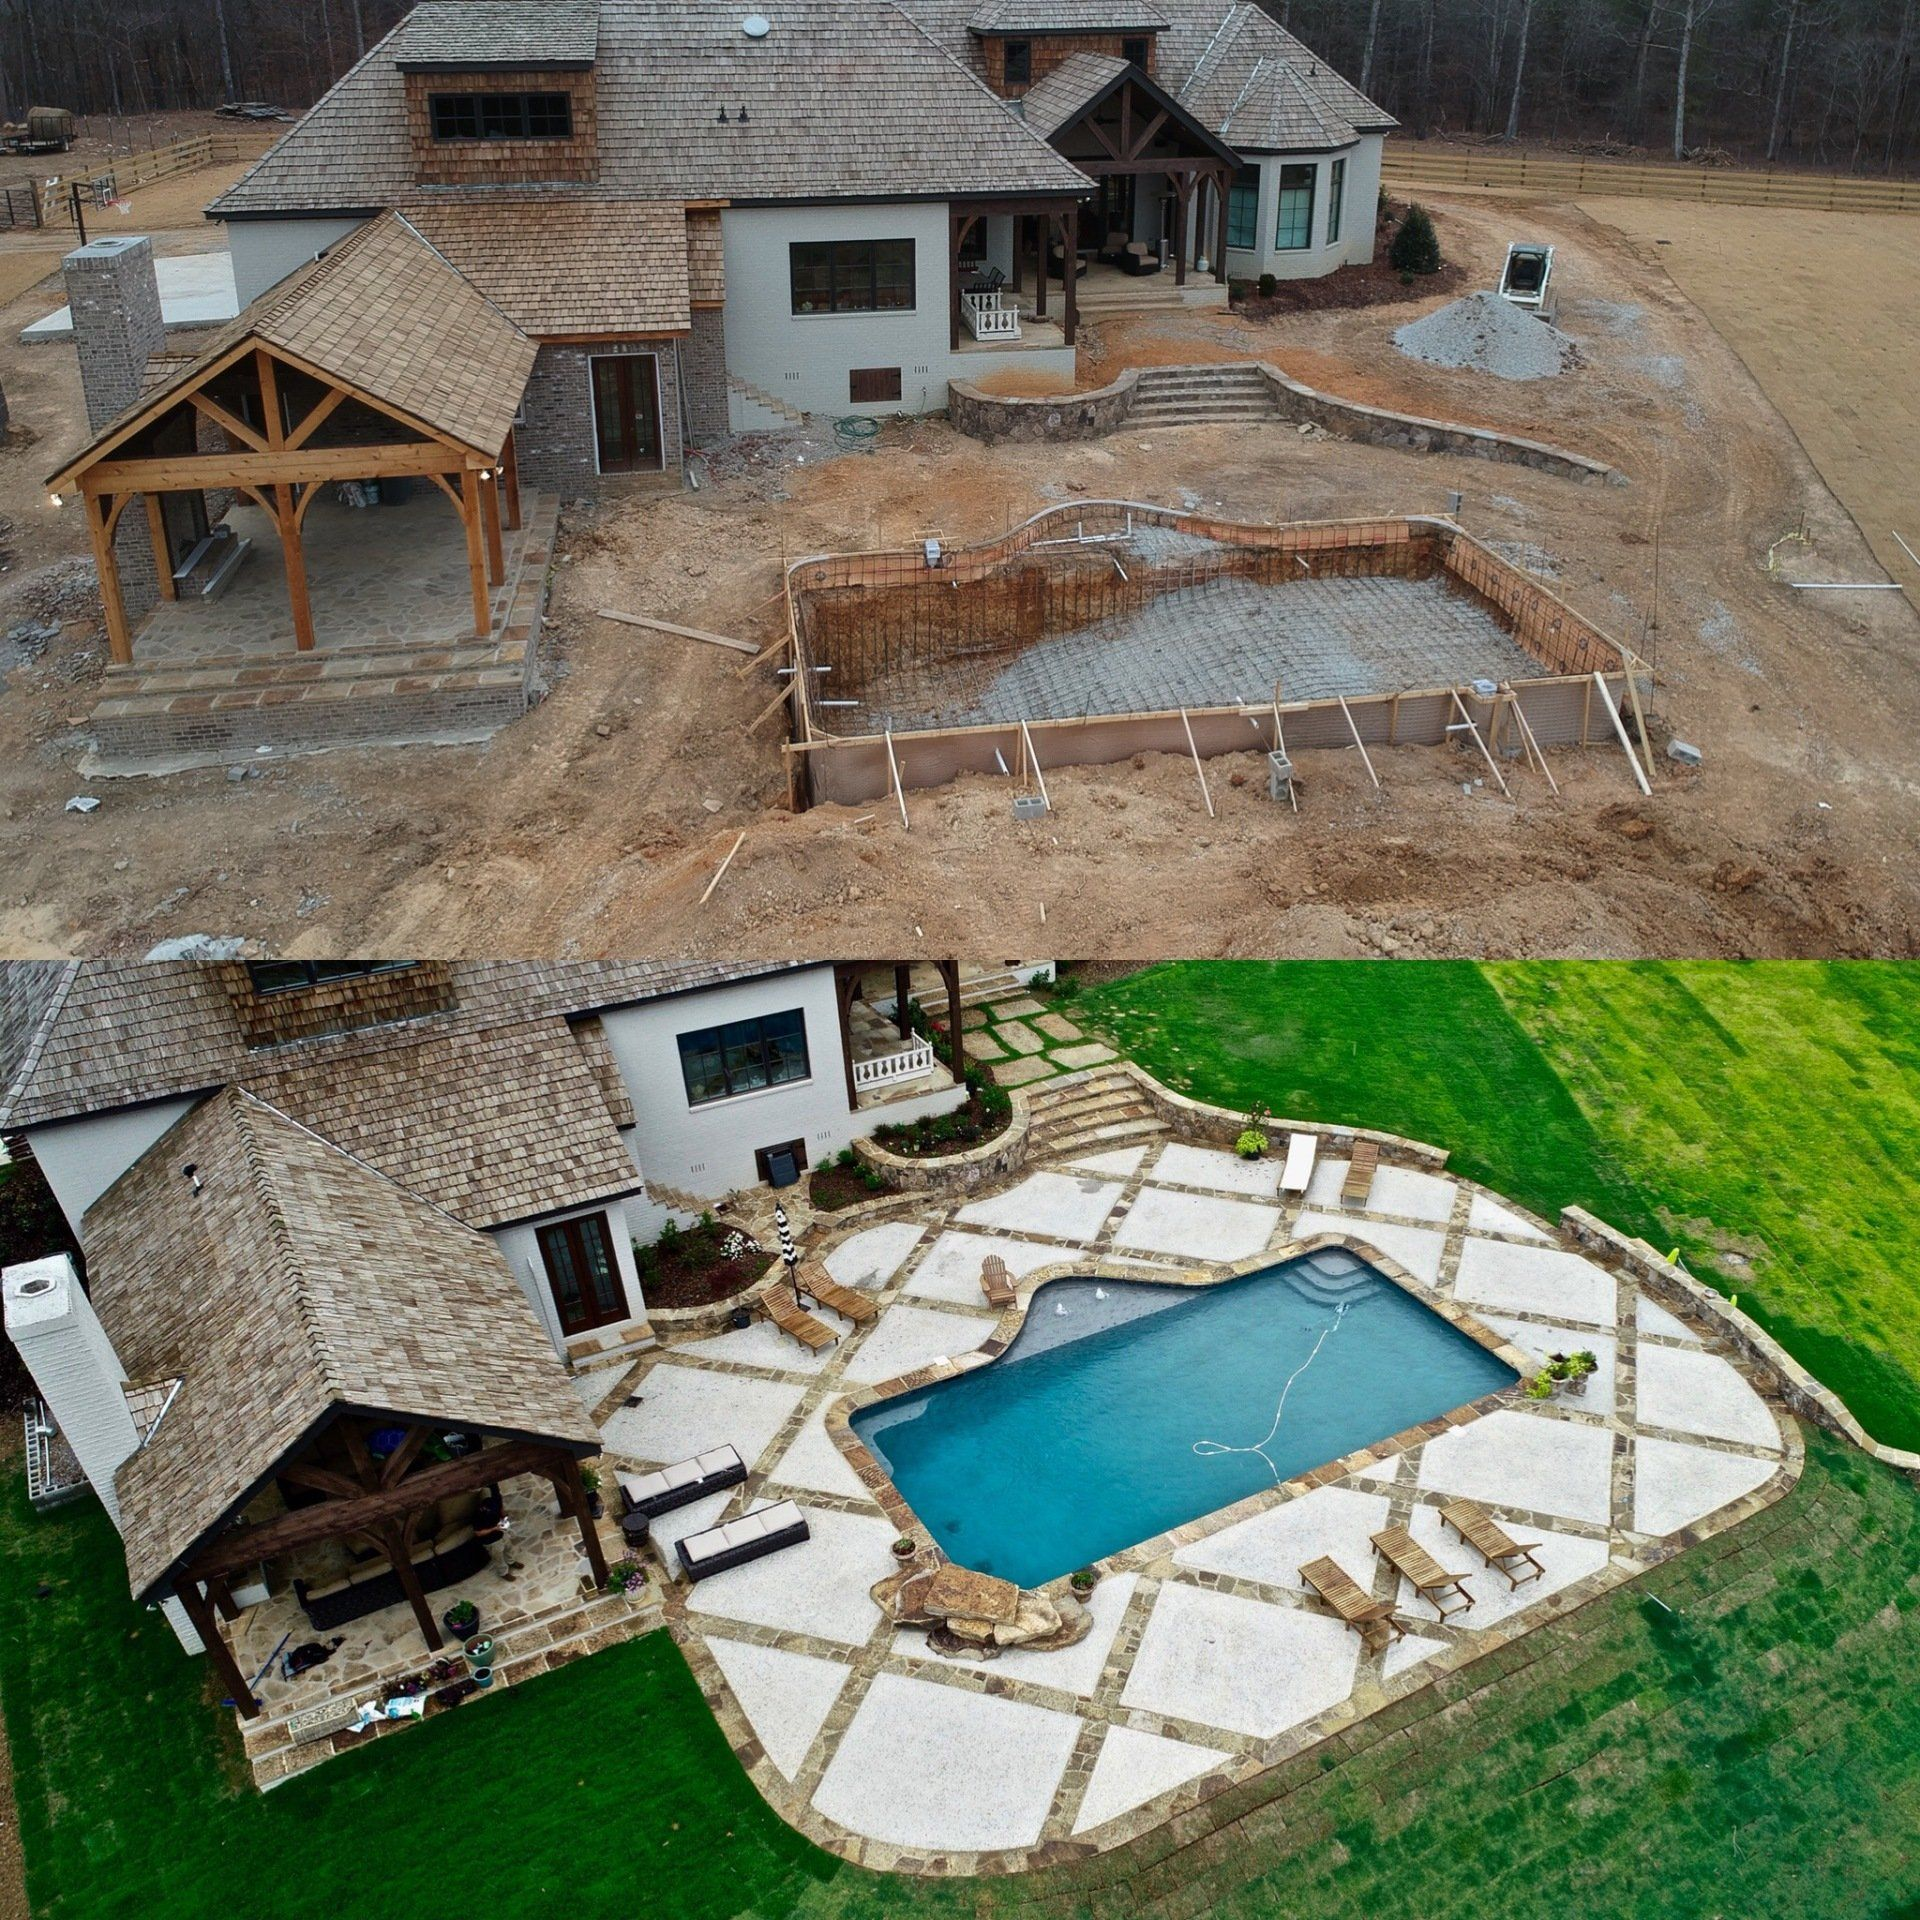 Treat Yourself To A Home Transformation Like This Call Us Today 205 437 1012 Landscape Design Services Landscape Design Hardscape